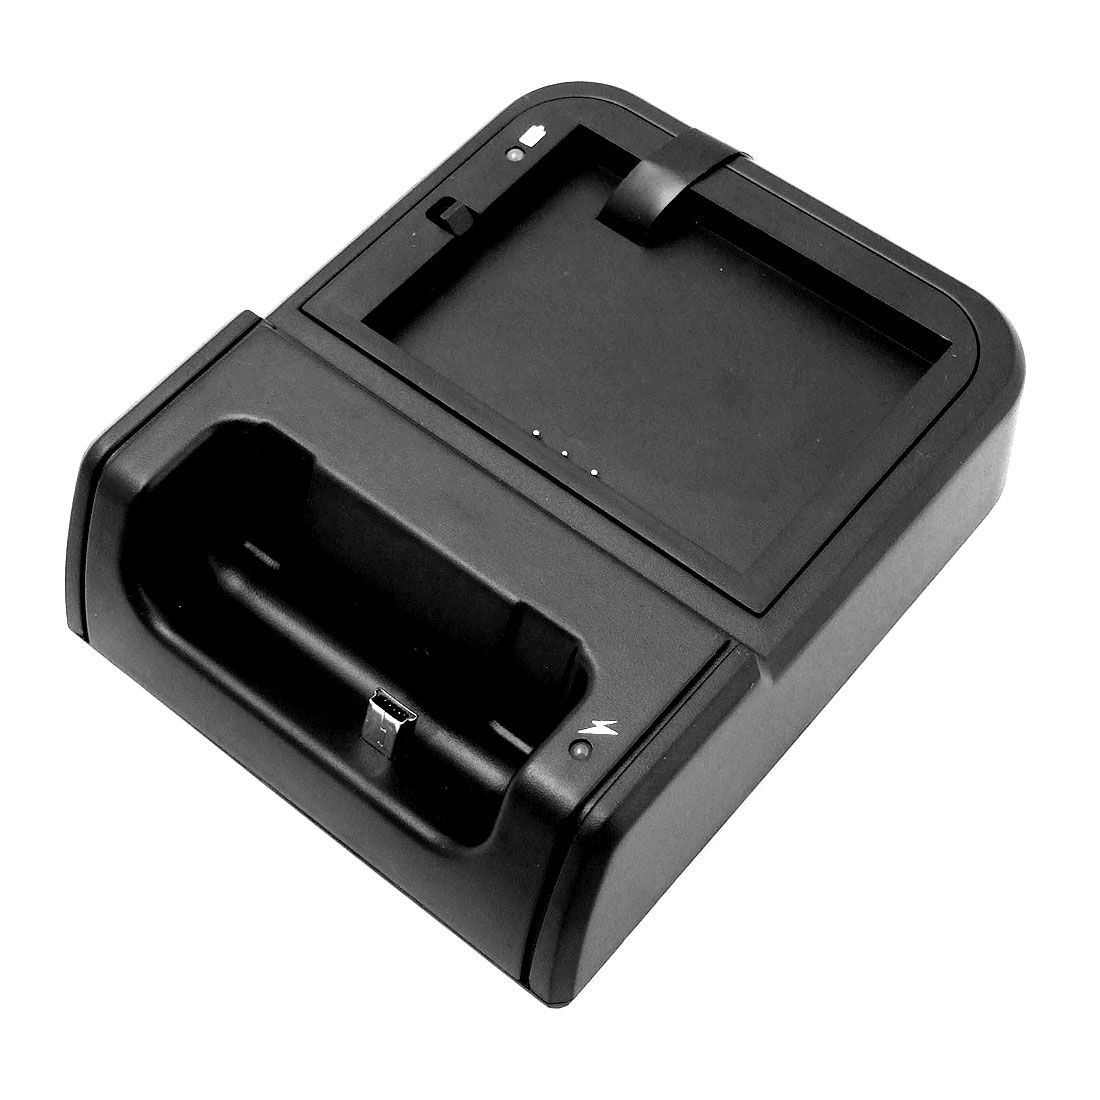 USB A/C adapter Charger Cradle for Eten M700 US